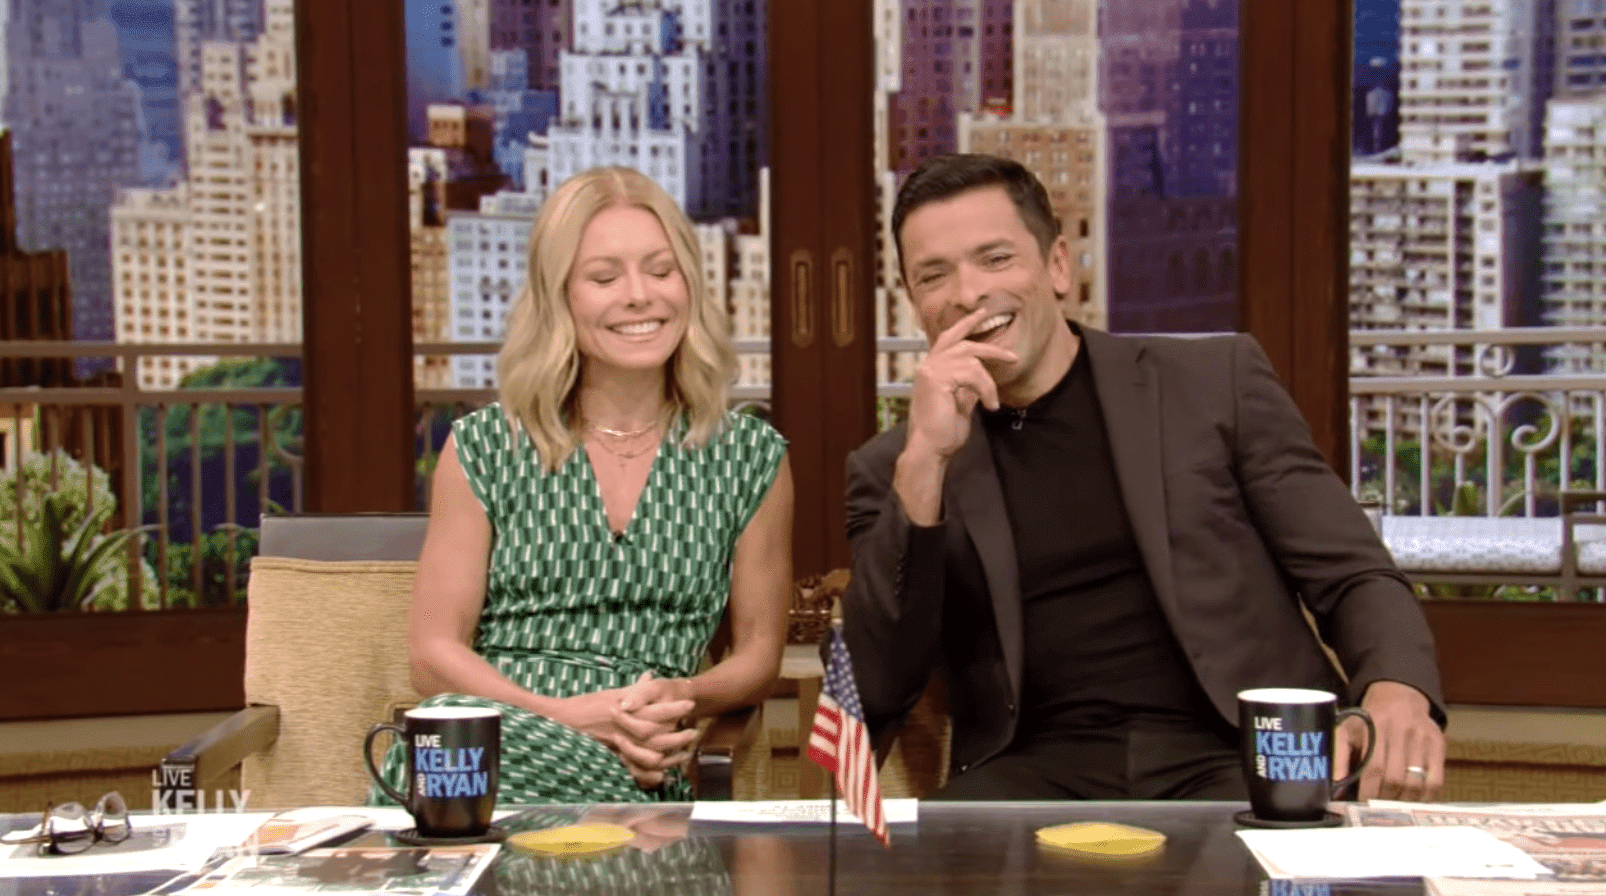 """Kelly and Mark on """"Live With Kelly and Ryan"""" show. 